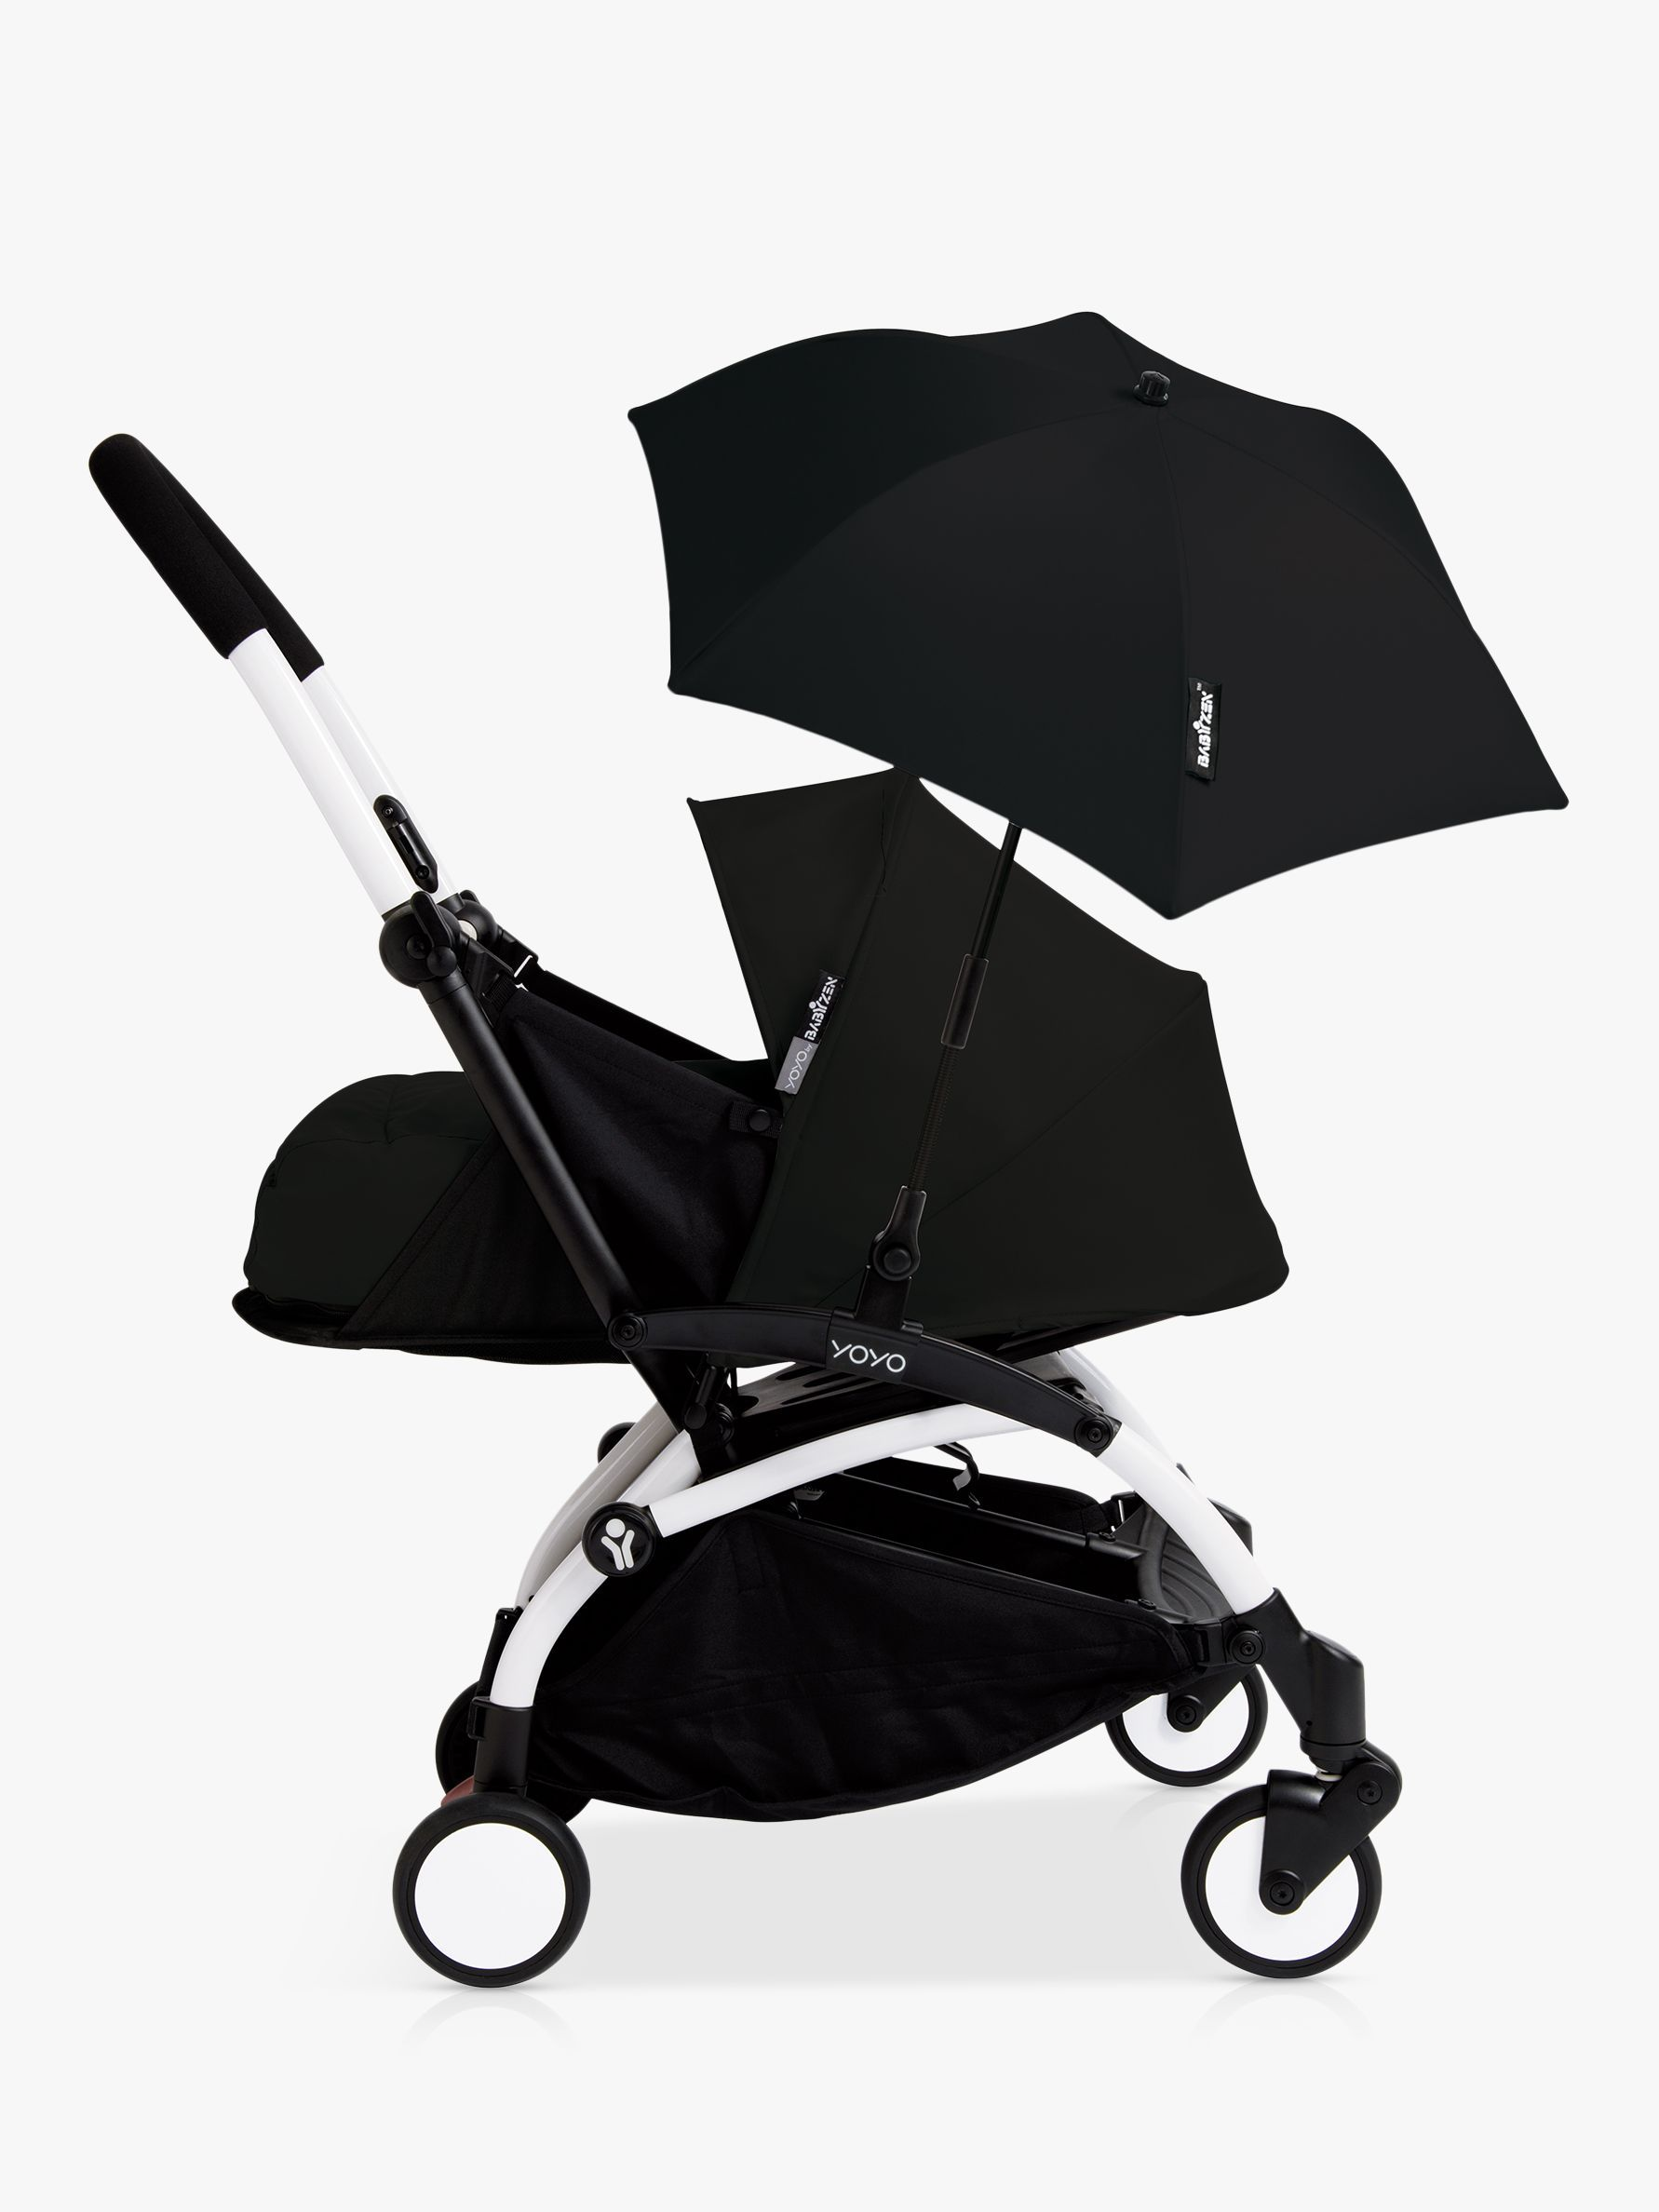 BABYZEN YOYO+ New Pushchair Parasol Prams, Blue, Navy blue